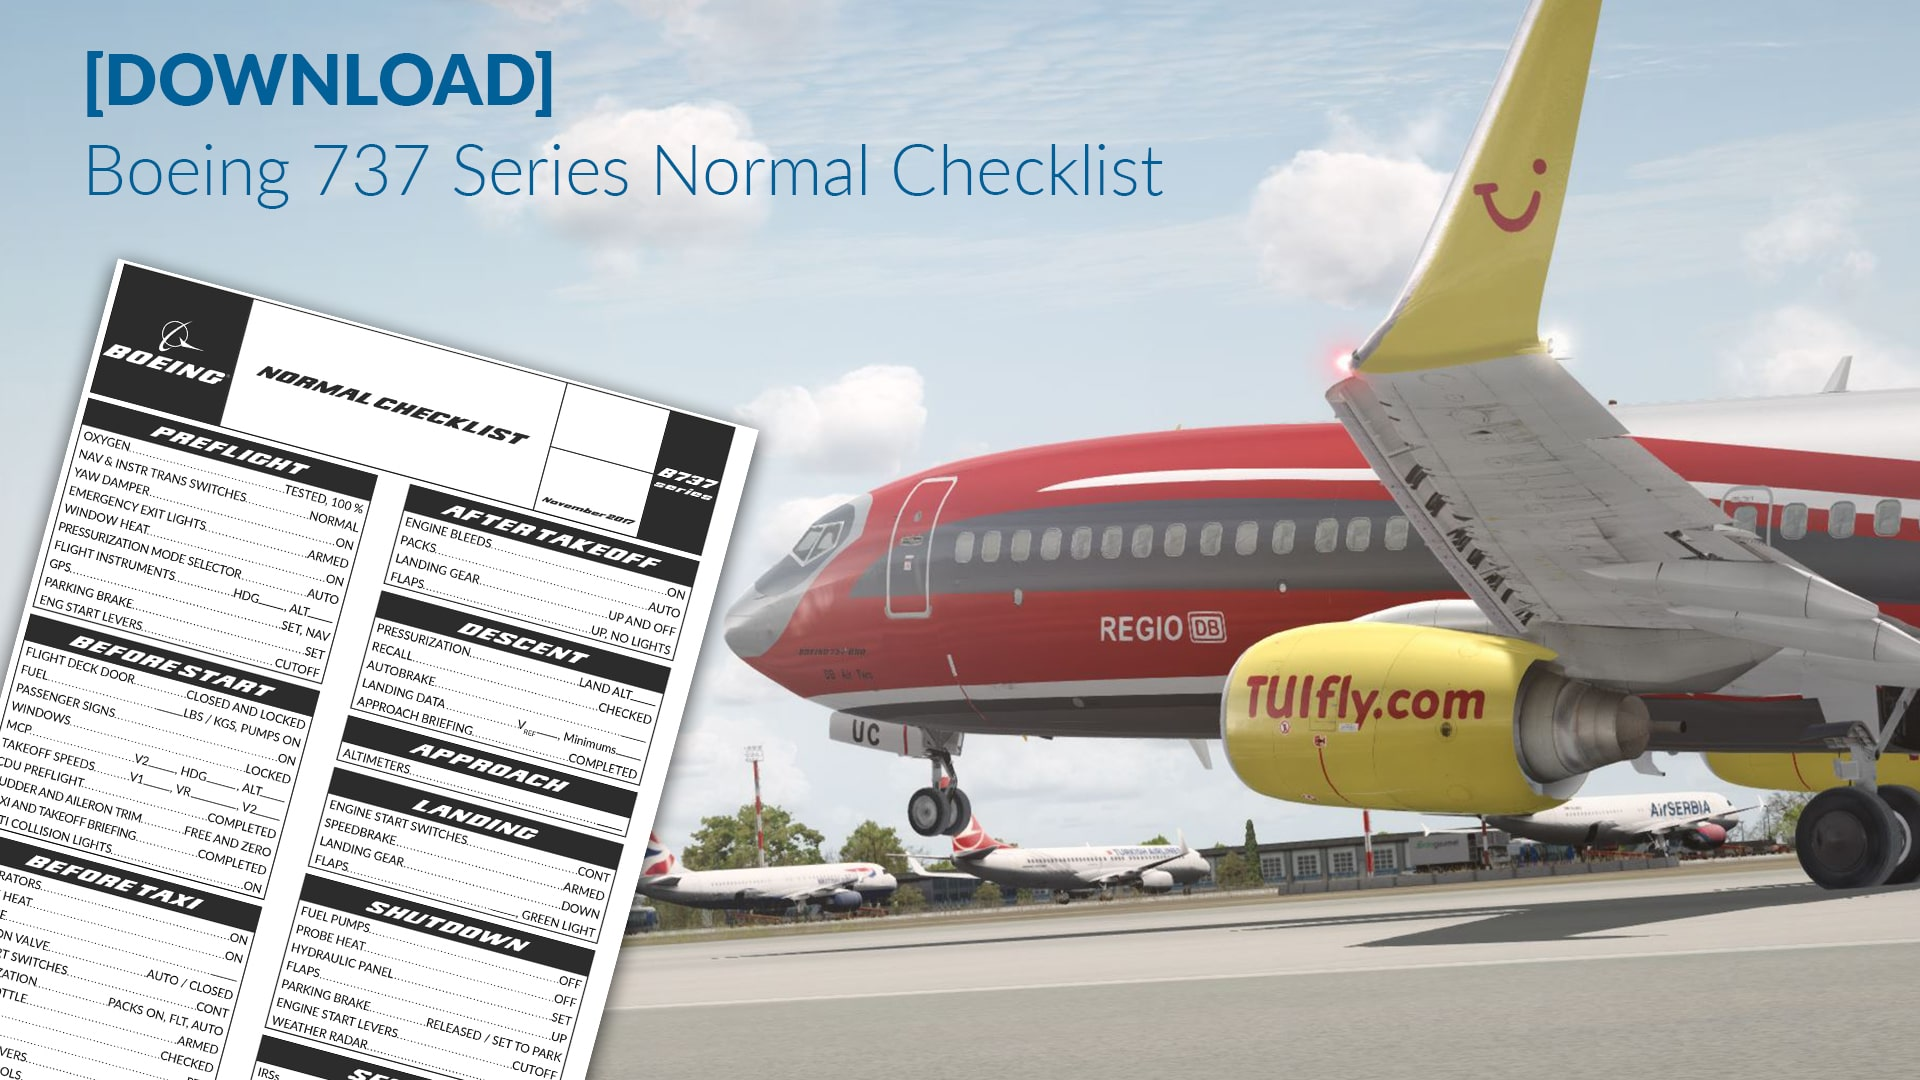 [DOWNLOAD] Boeing 737 Series Checklist – Normal Procedures